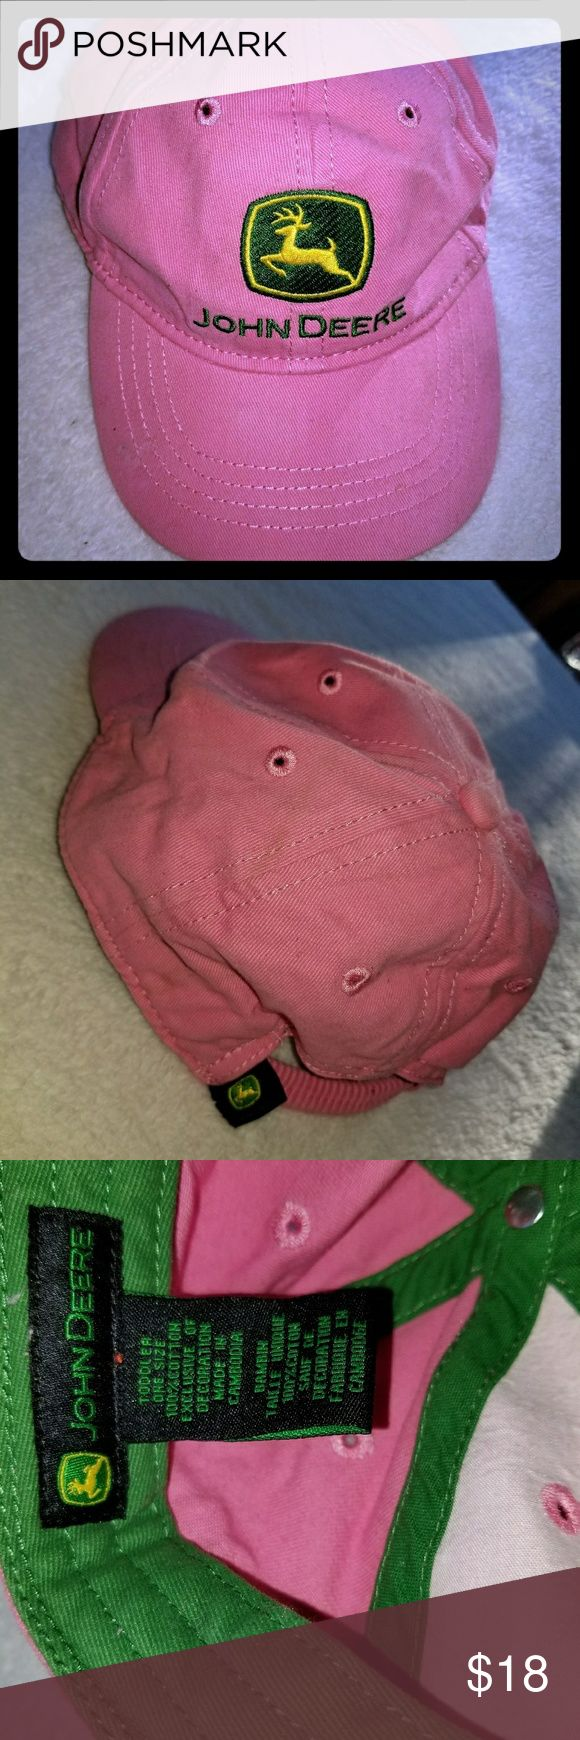 Toddler Girl John Deere Baseball Hat Pink EUC Toddler Girl  John Deere Baseball Hat  Pink EUC  Sizs: Toddler-One Size  Stretchy/Elastic  Ponytail Holder  EUC: No Signs of wear/tear, stains, etc From a Smoke Free & Pet Free Home John Deere Accessories Hats